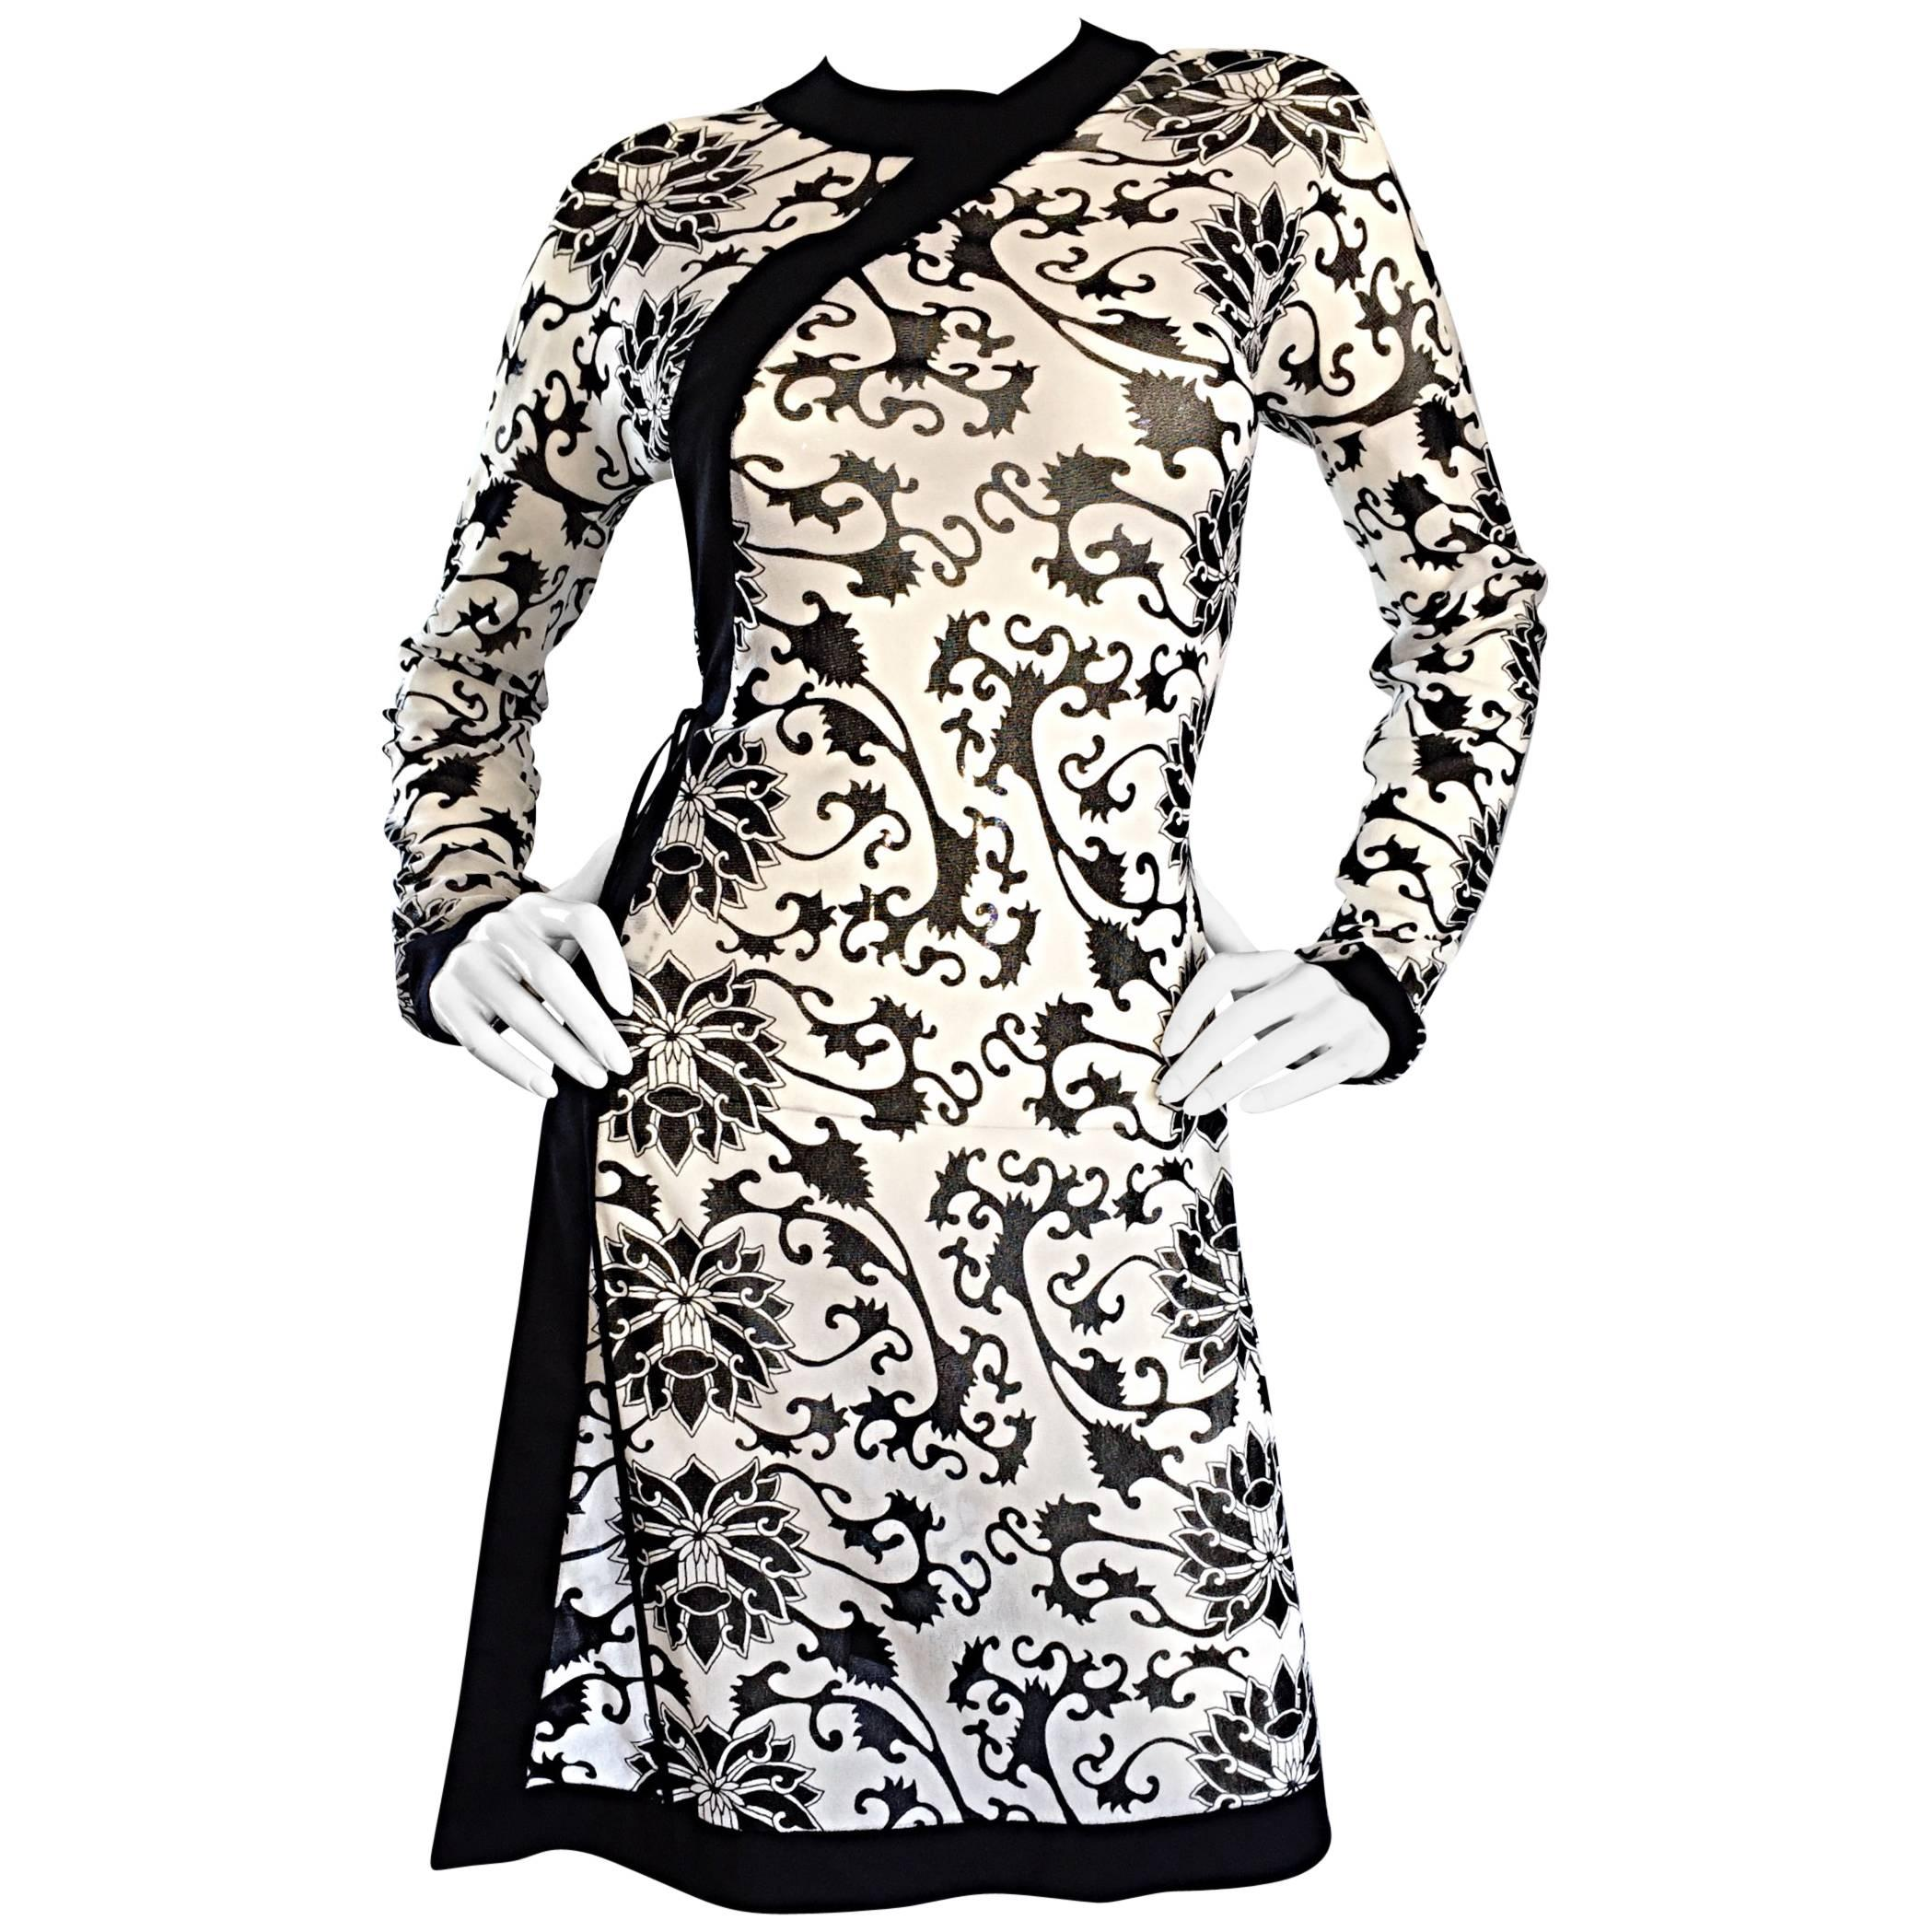 142e5204cdd Rare Vintage Vivienne Tam Black and White Tattoo Print Asian Inspired Wrap  Dress For Sale at 1stdibs